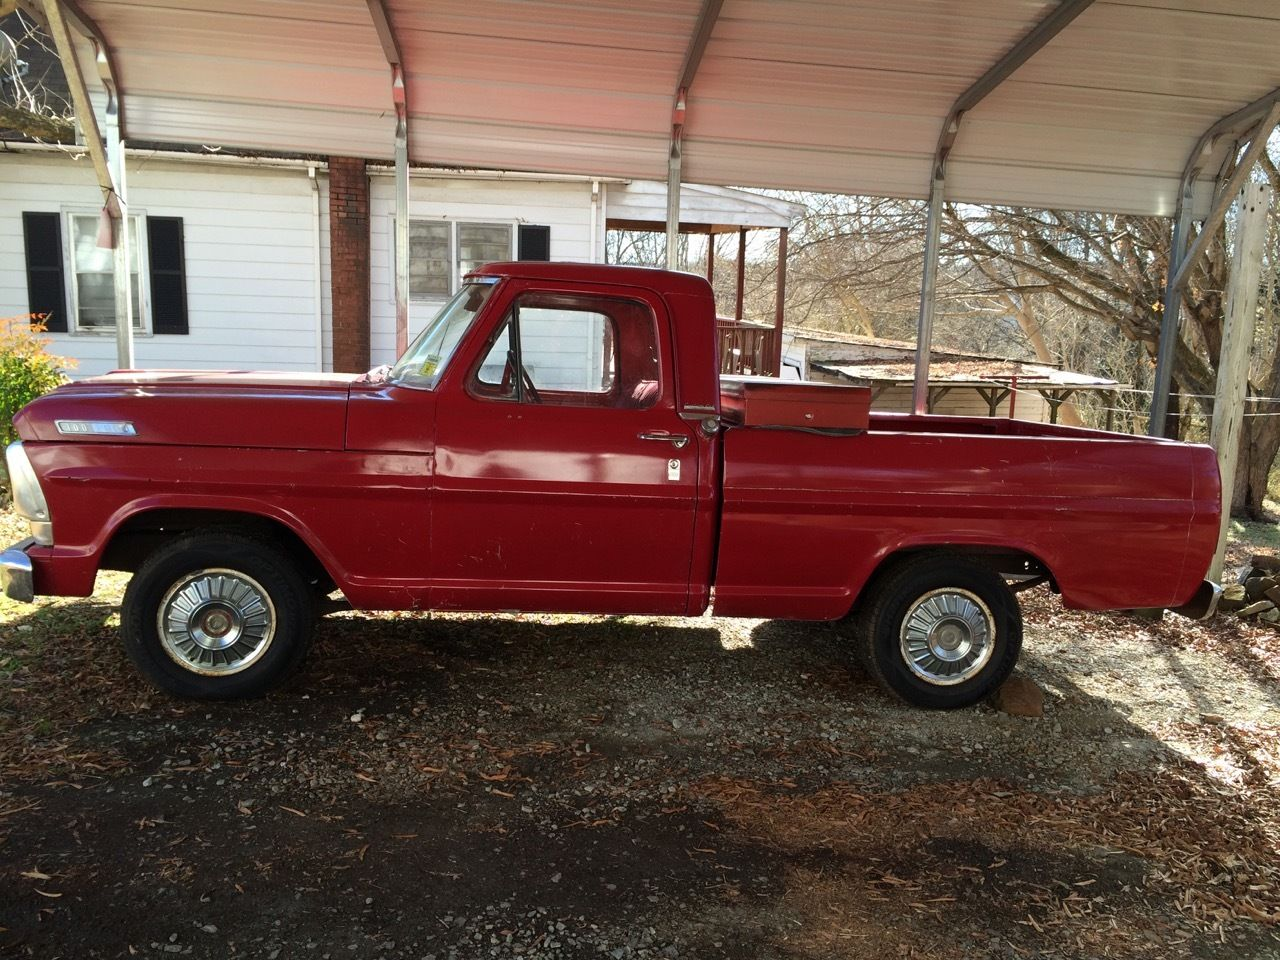 Used Cars Winston Salem >> 1967 Ford F-100 Pickup Truck - Classic Ford F-100 1967 for sale